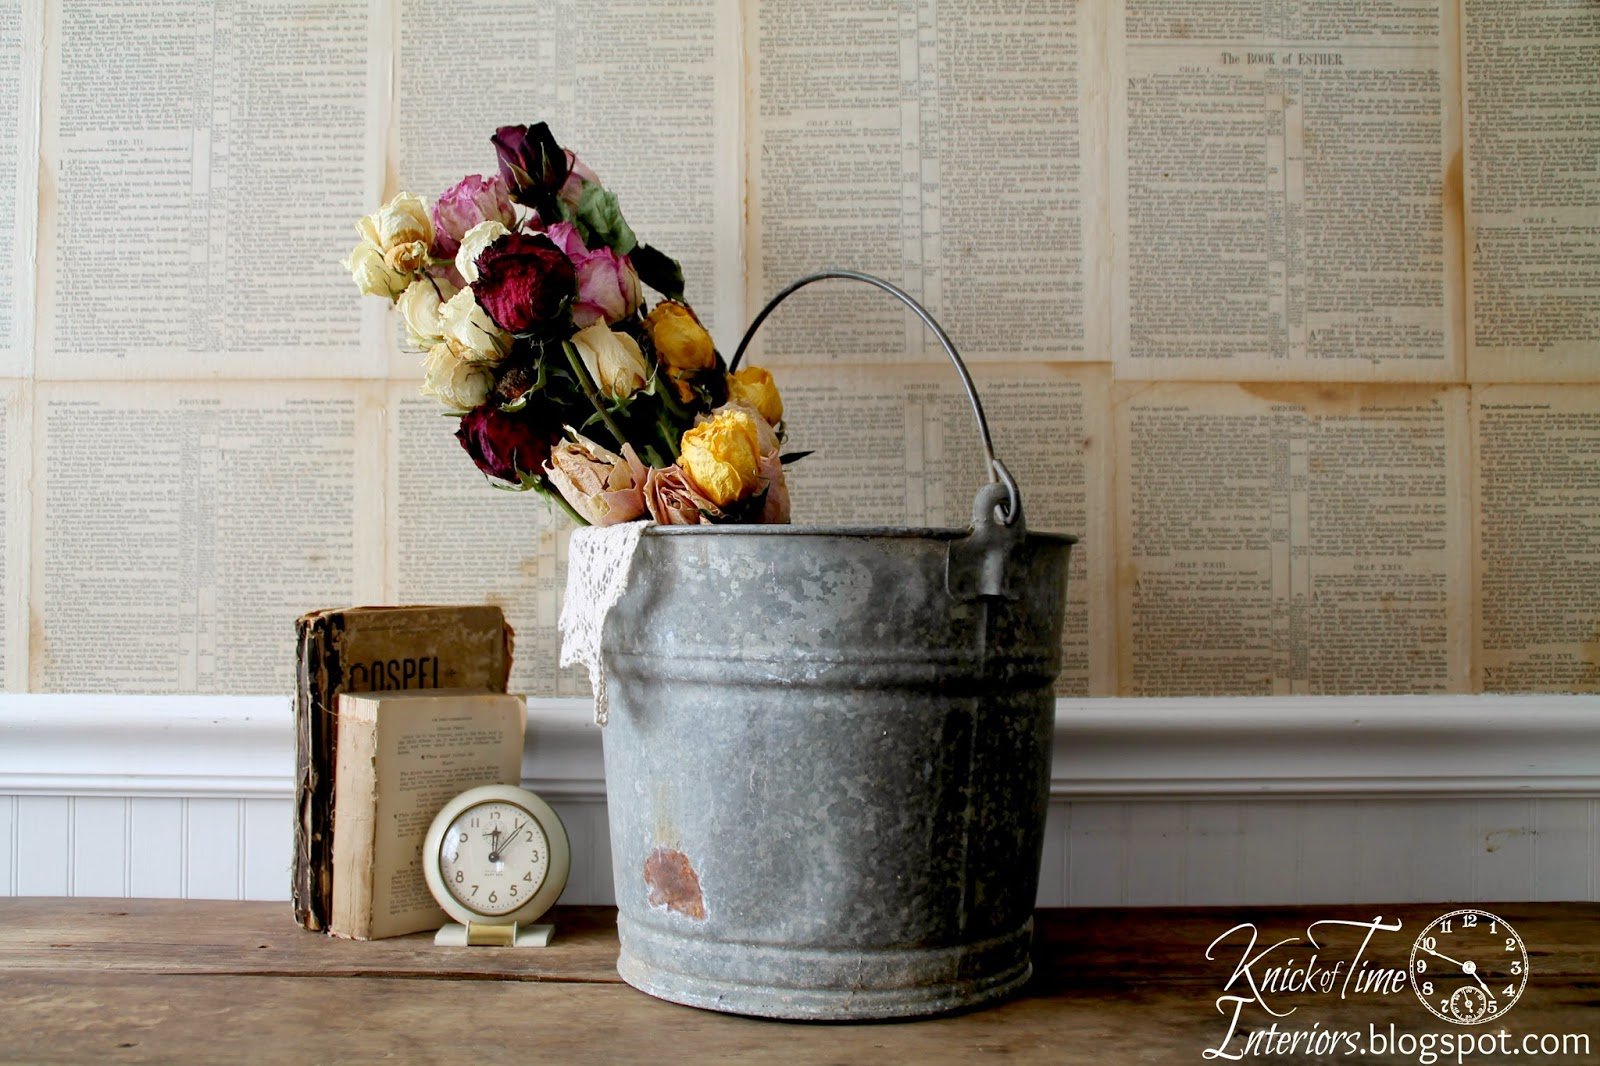 Farmhouse Vintage Galvanized Bucket Pail available from Knick of Time